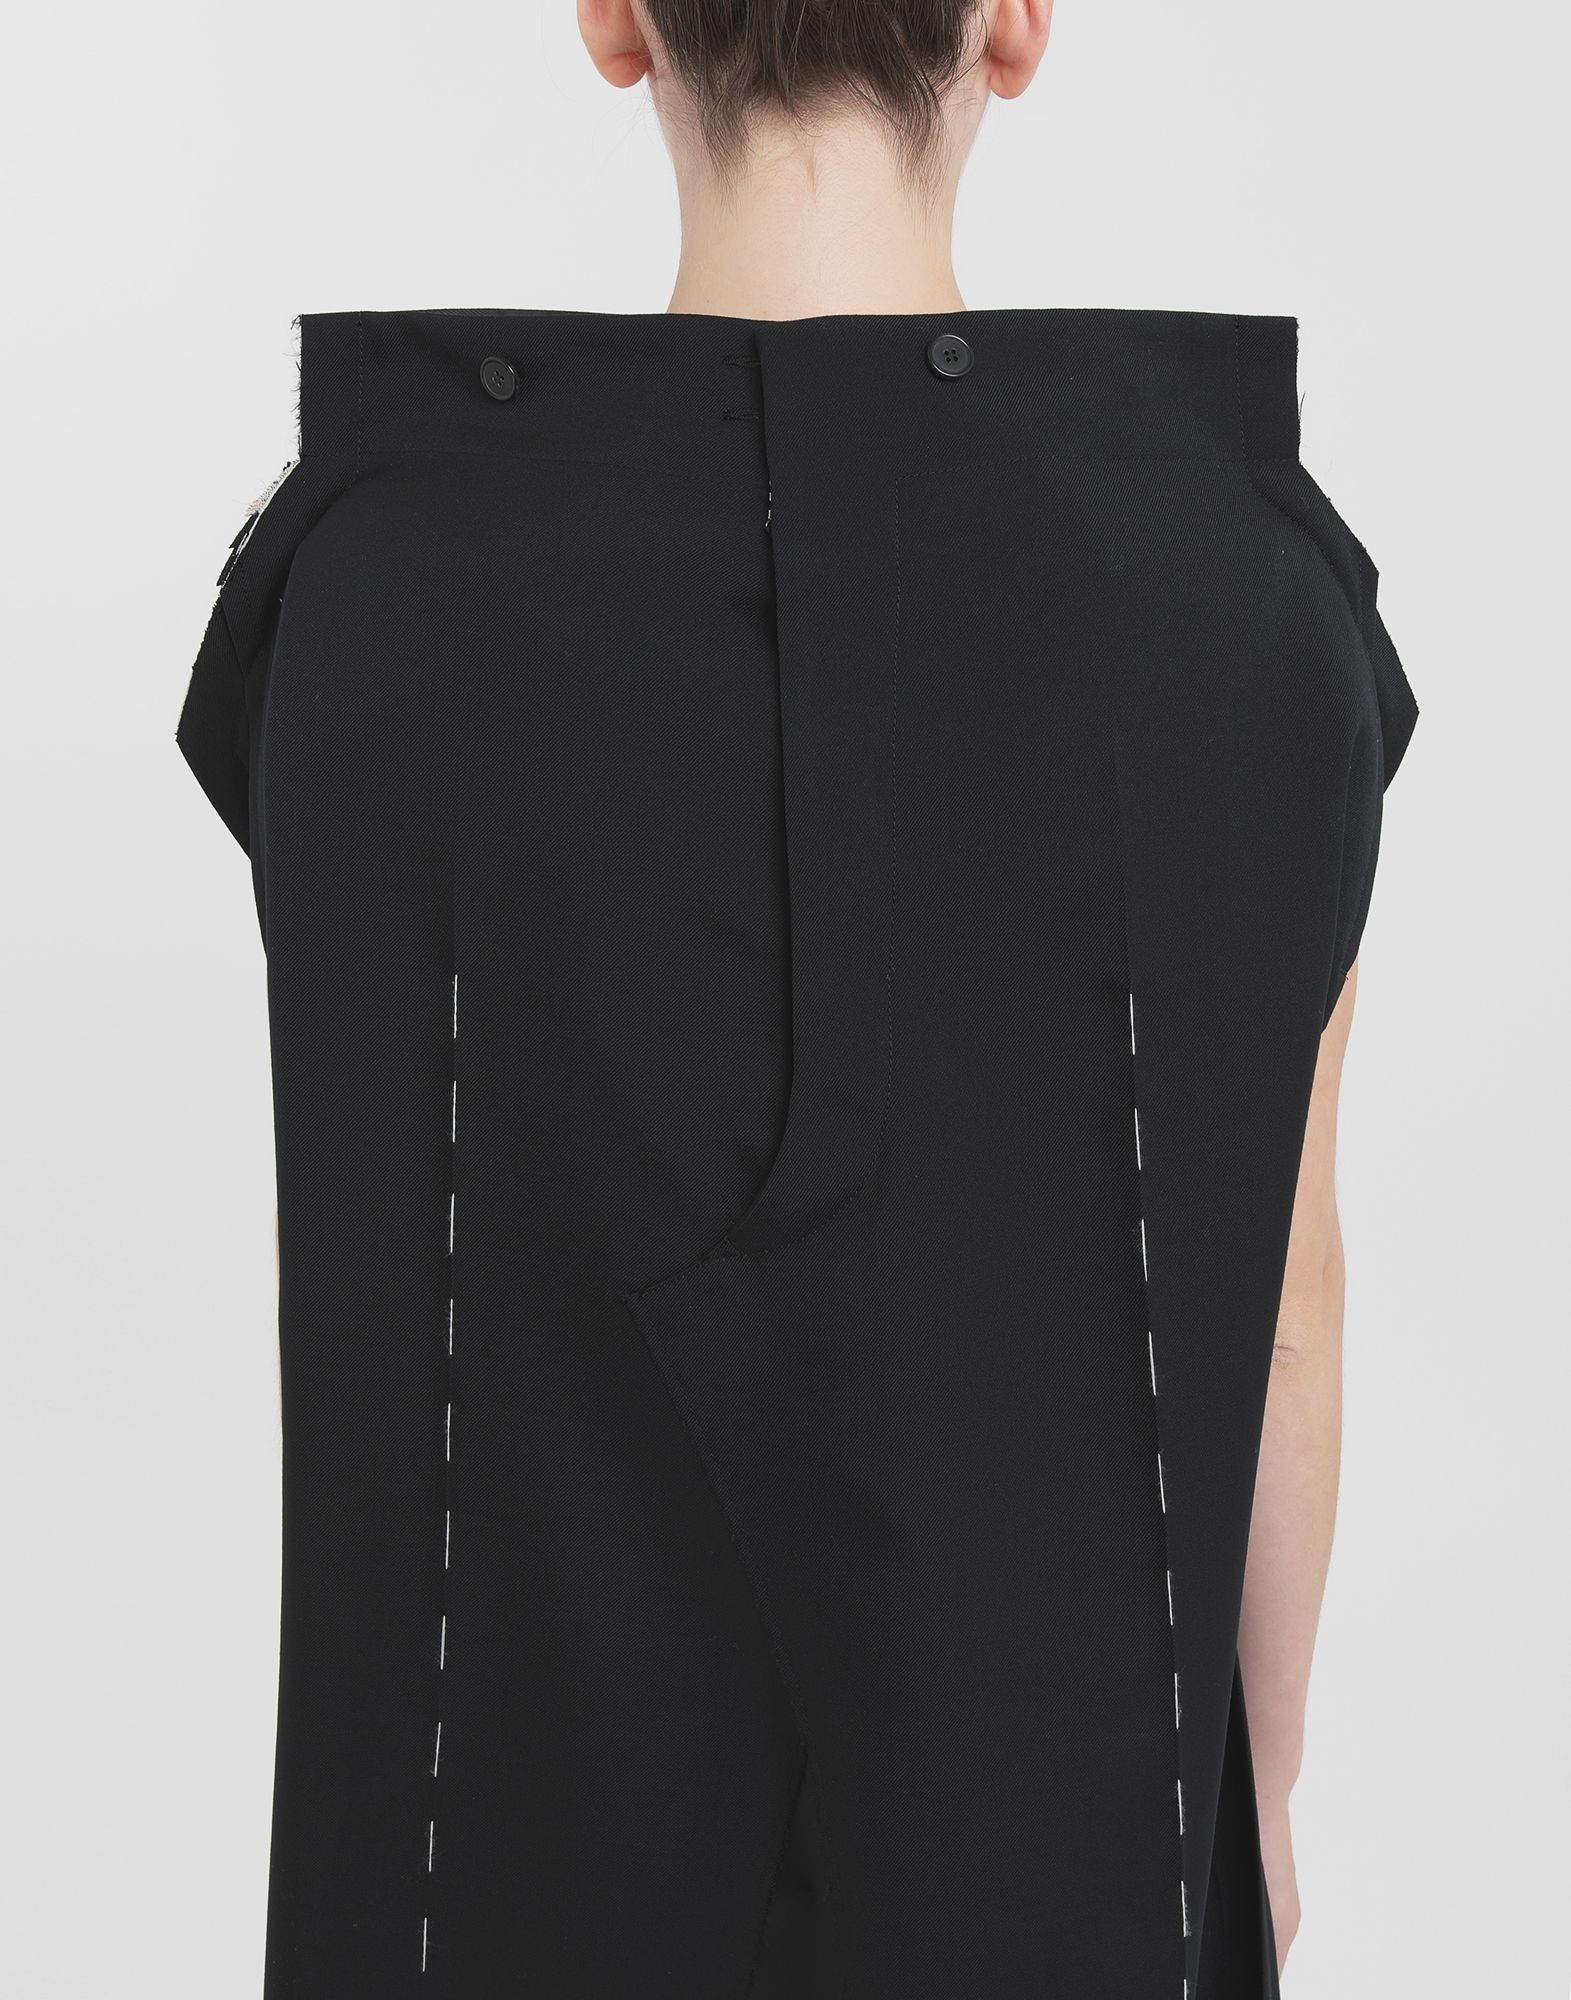 MAISON MARGIELA Outline dress Dress Woman e